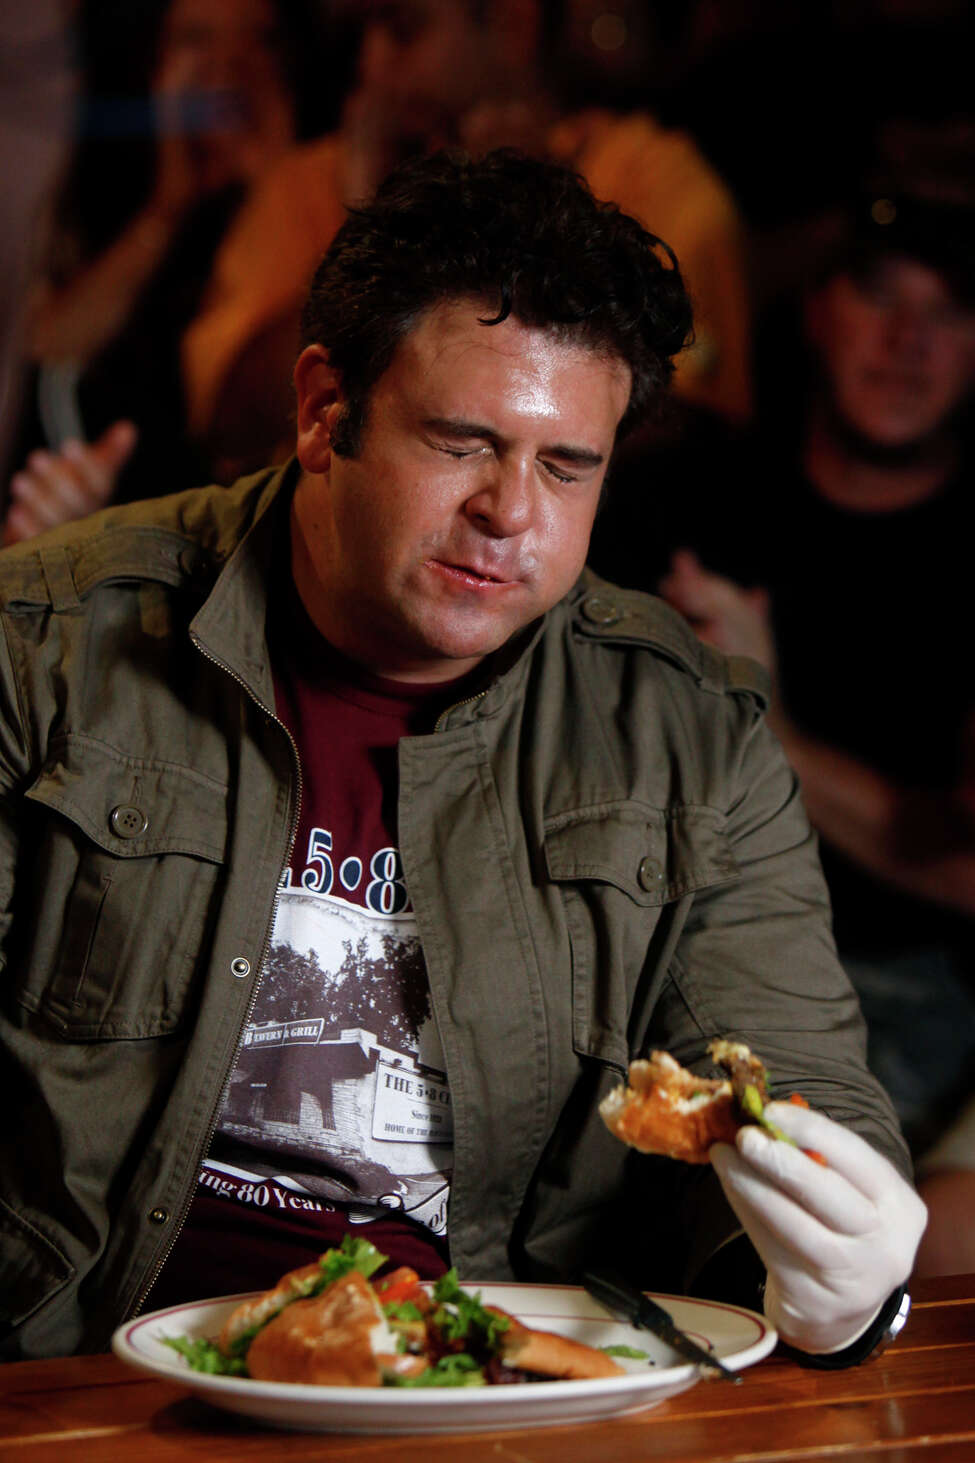 Adam Richman, host of the Travel Channel's 'Man vs. Food,' eats The Four Horseman burger during taping of the show at Chunky's Burgers and More in San Antonio on June 3, 2009.